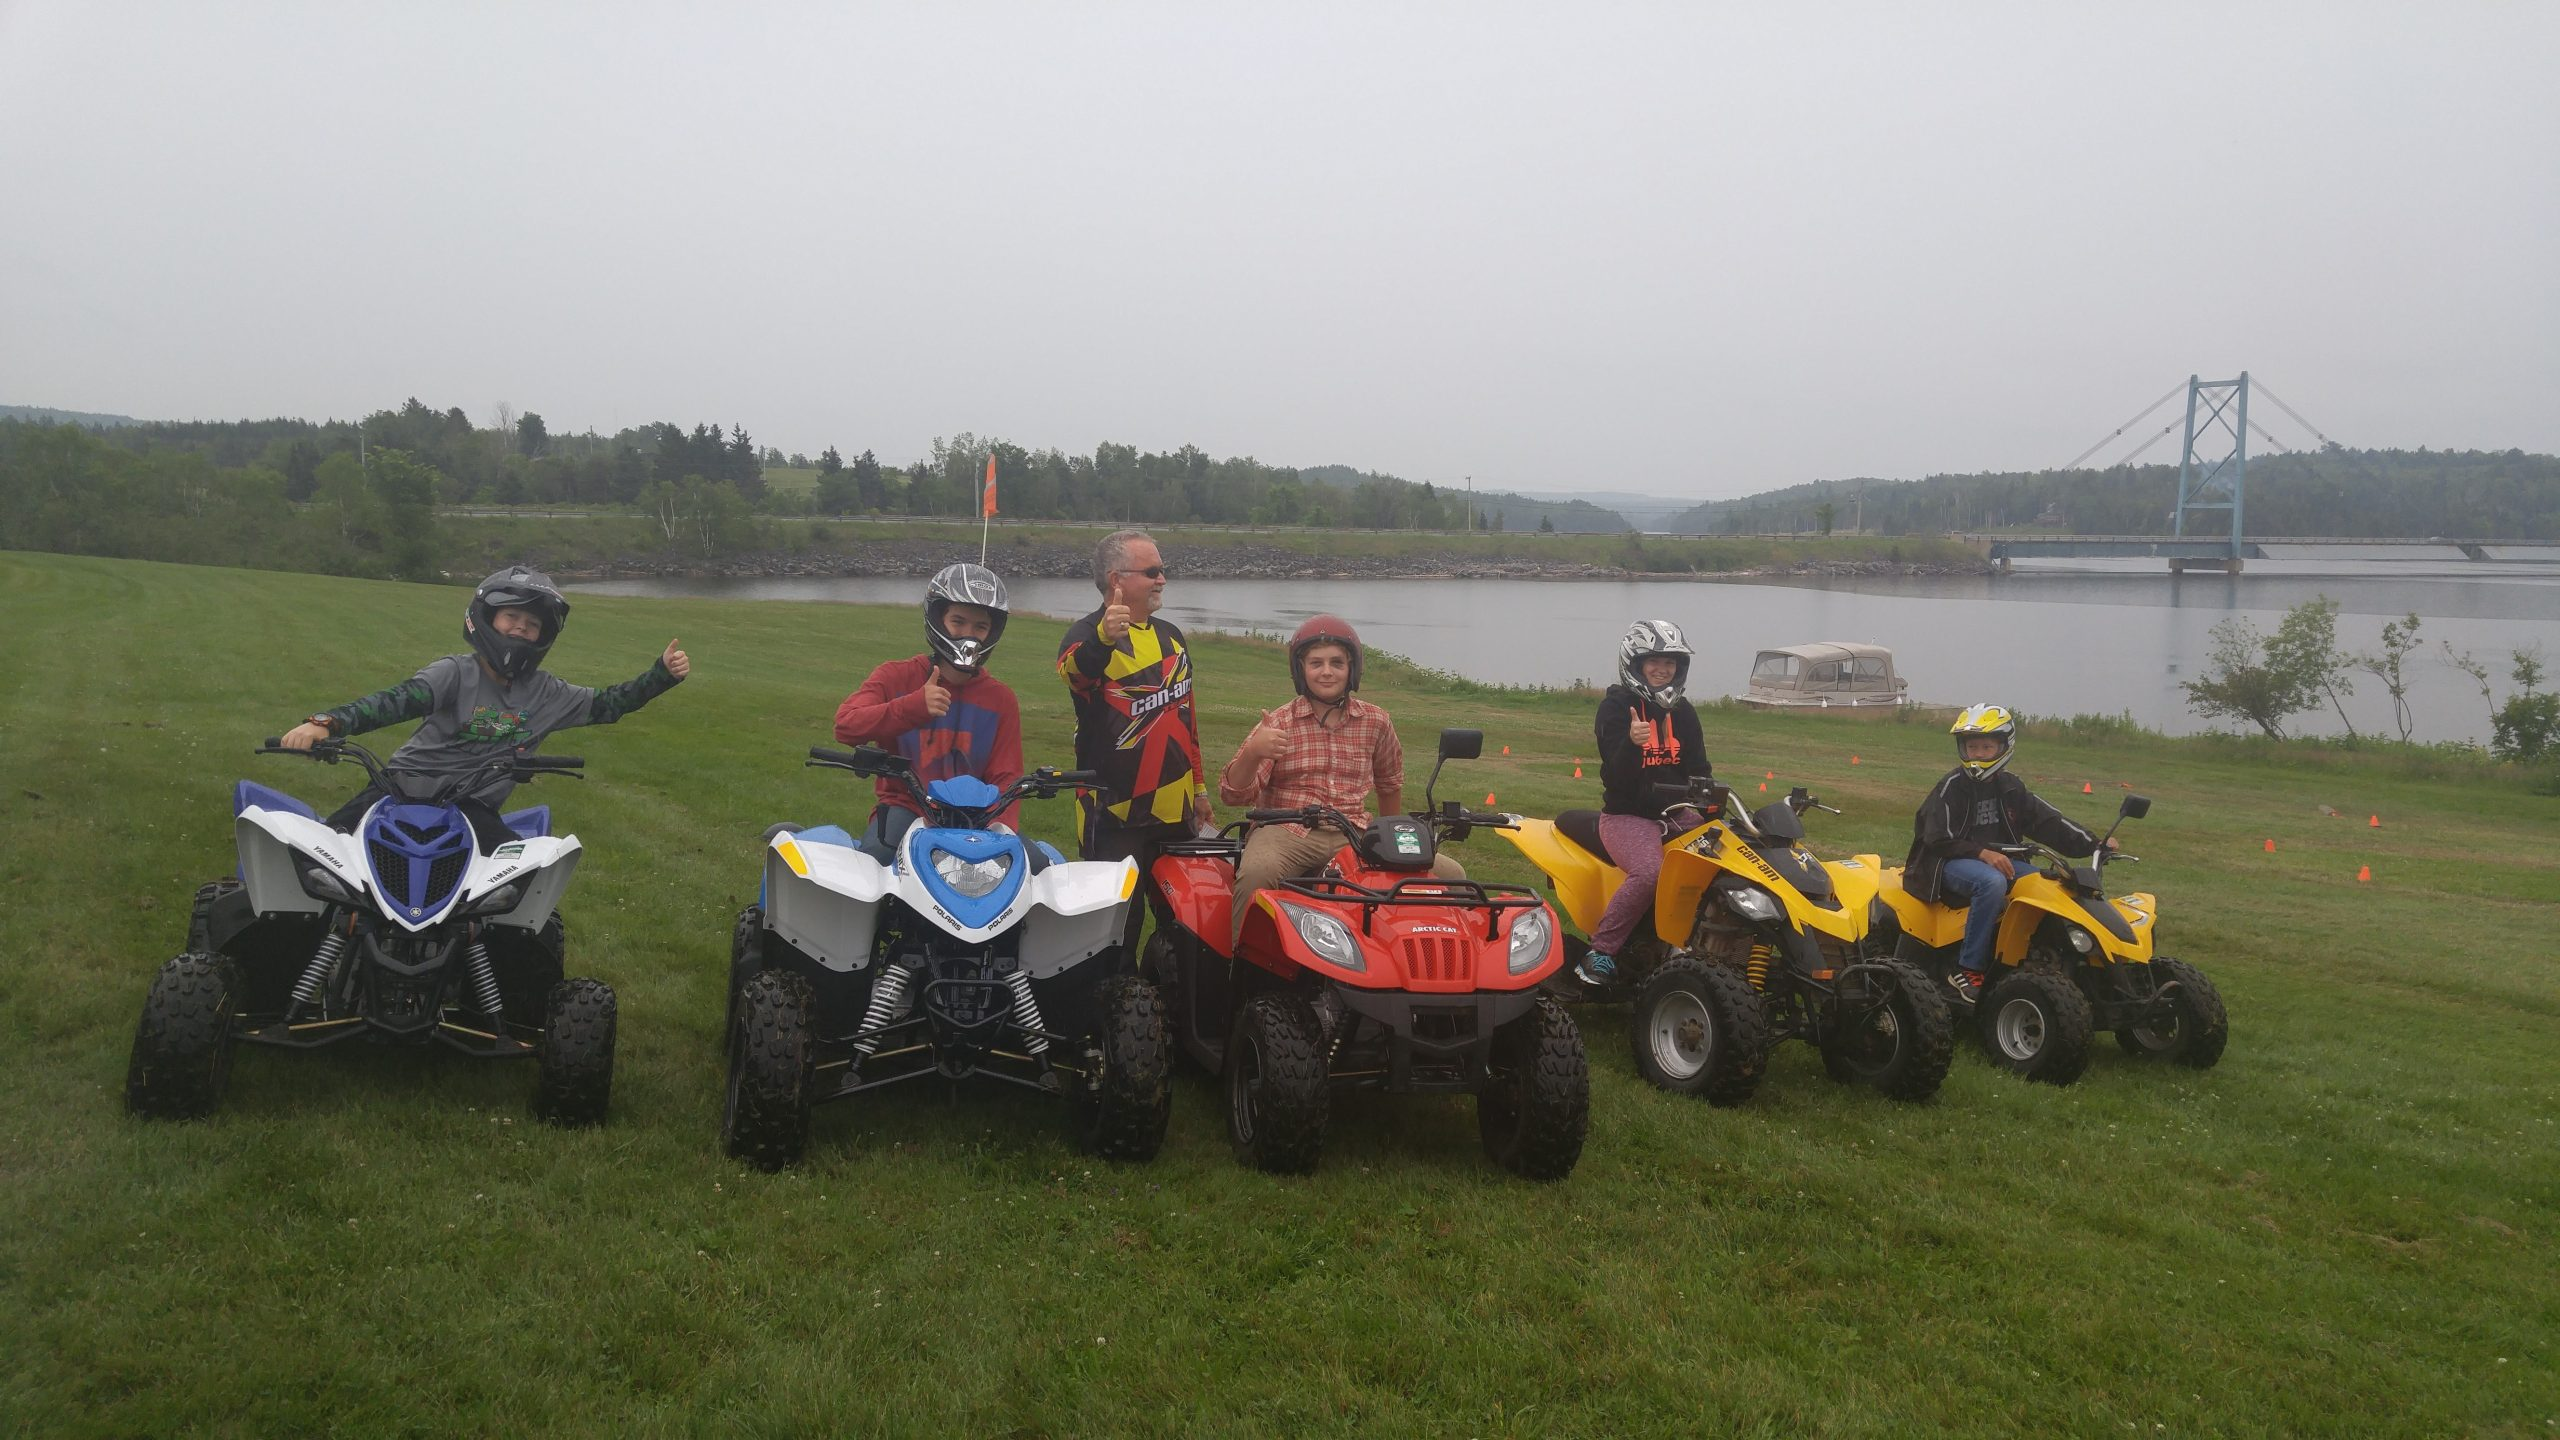 ATV Safety Tips For ATV Riding